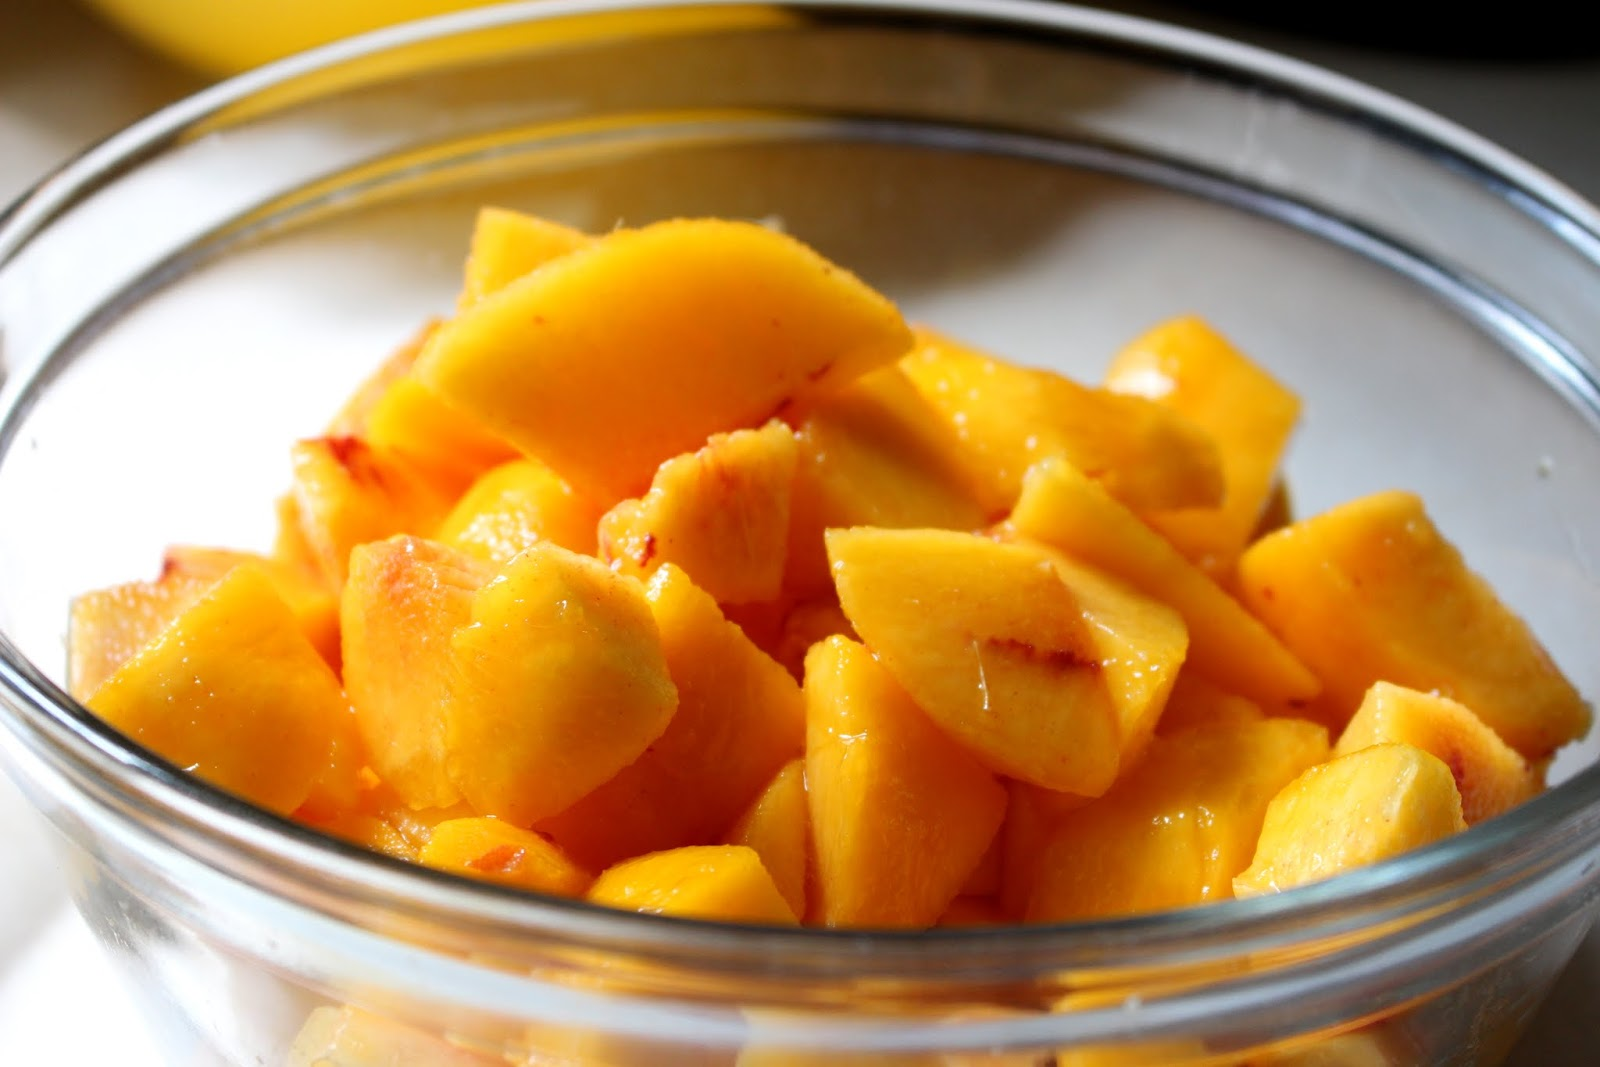 cut up peaches - how to make peach blueberry dump cake - mehaffey moments